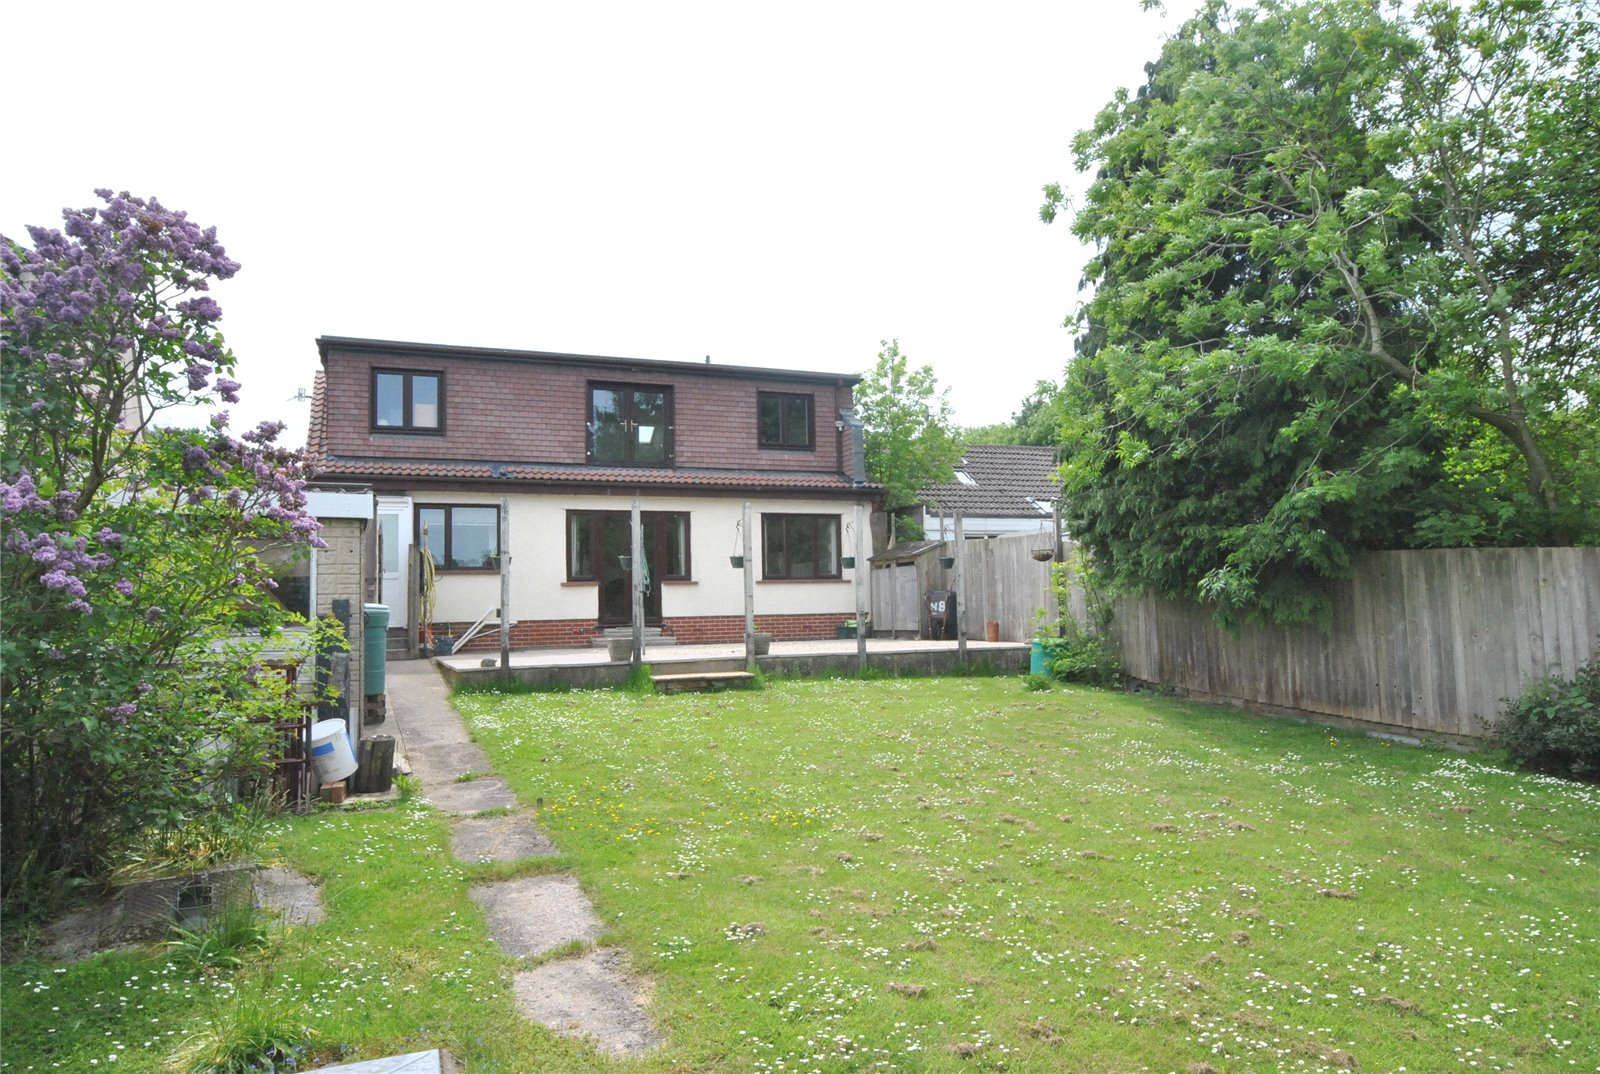 Cj Hole Congresbury 4 Bedroom House For Sale In Downside